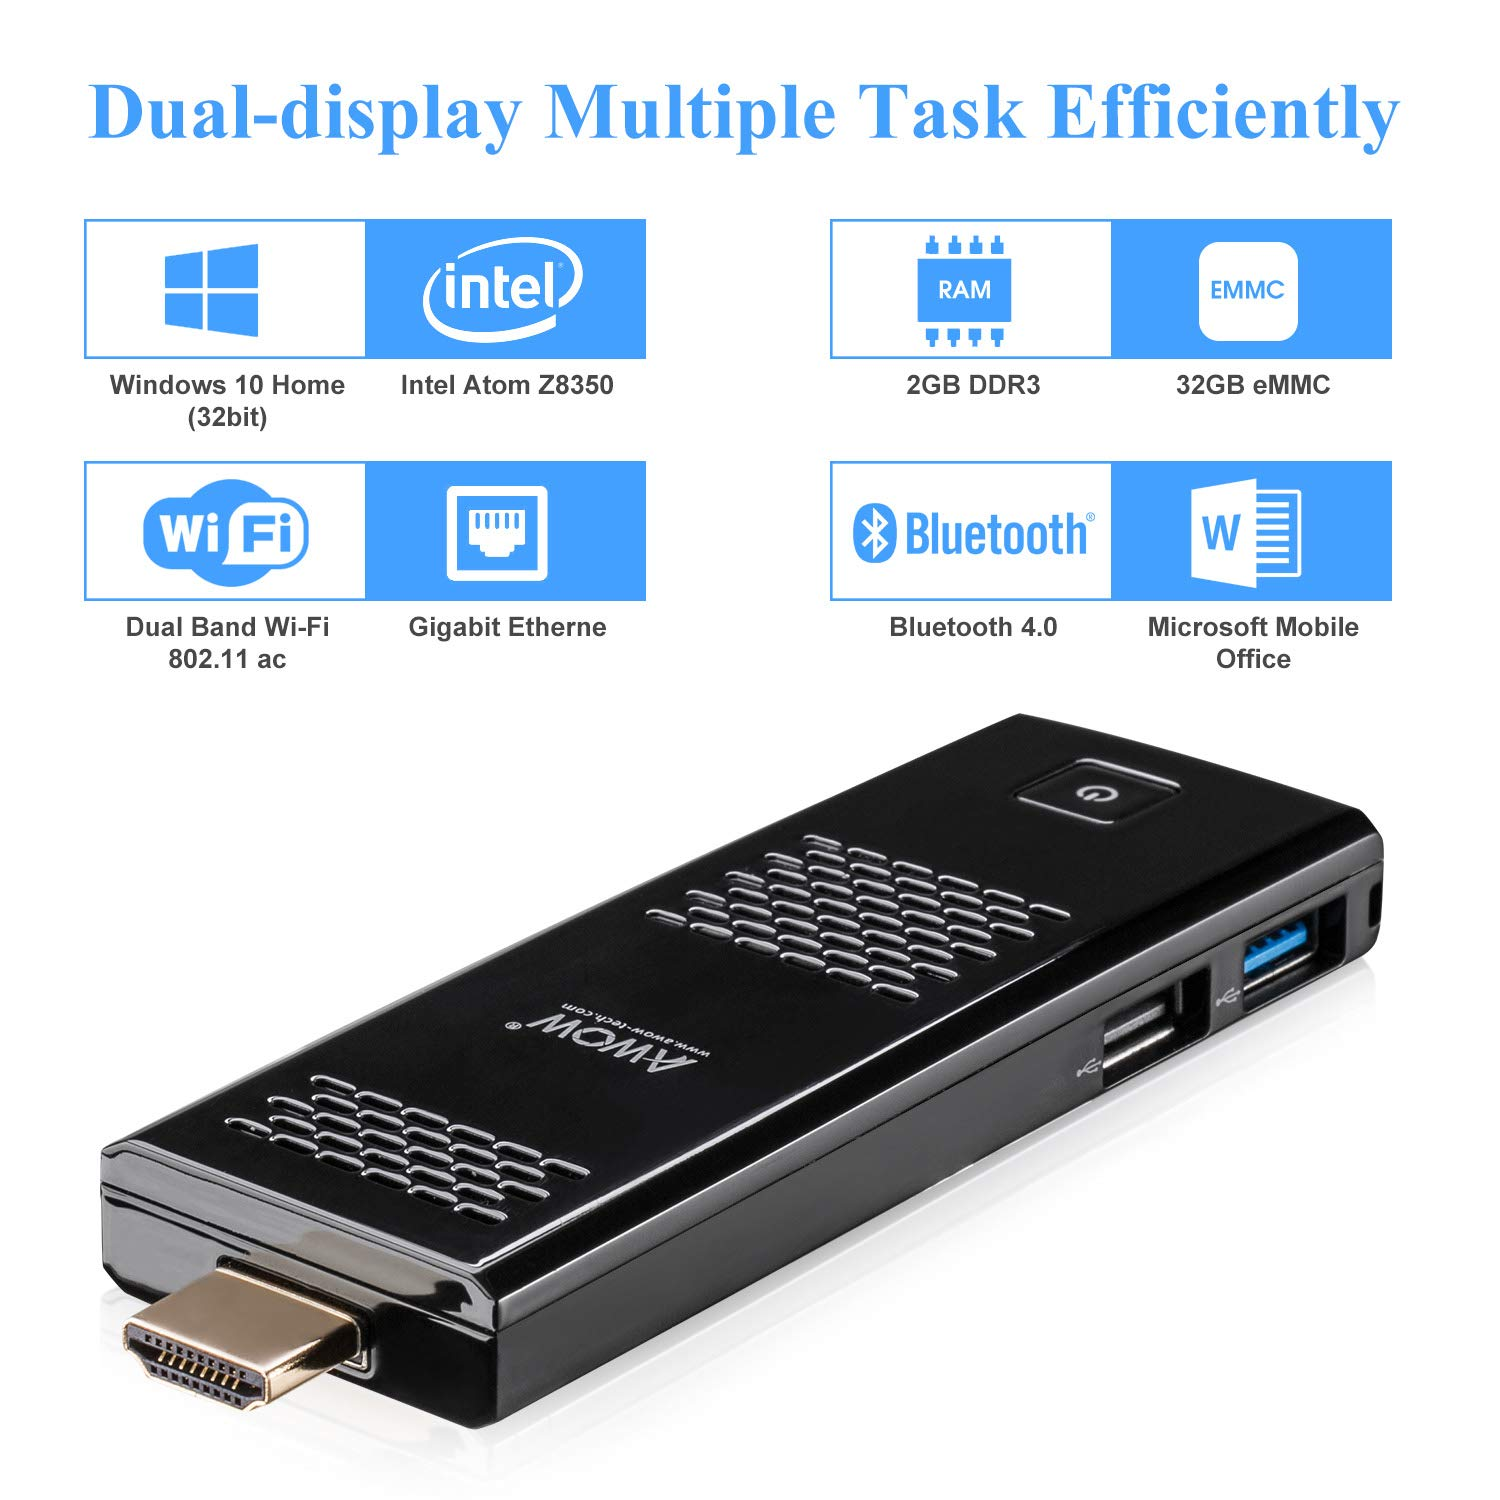 AWOW Windows 10 Compute Stick Mini PC - (Intel Atom z8350 Quad Core 1.44 GHz, 2GB DDR3, 32GB eMMC Flash, Dual Wi-Fi 2.4G+5G with 802.11 AC, HDMI, USB 3.0, ...